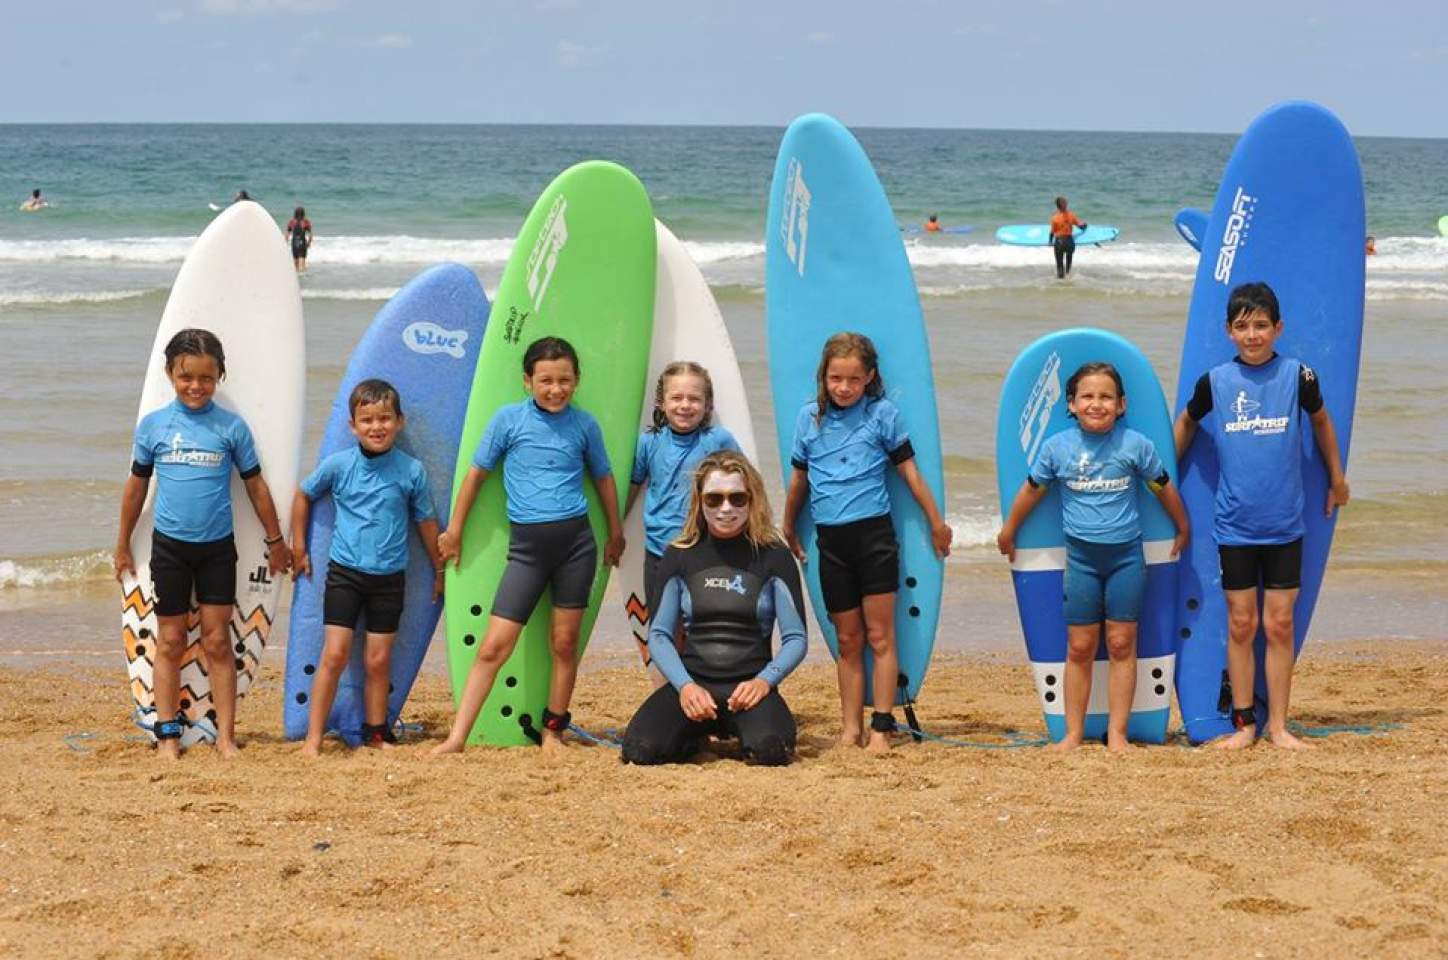 Top 8 Family surfing holiday options in Portugal for 2016